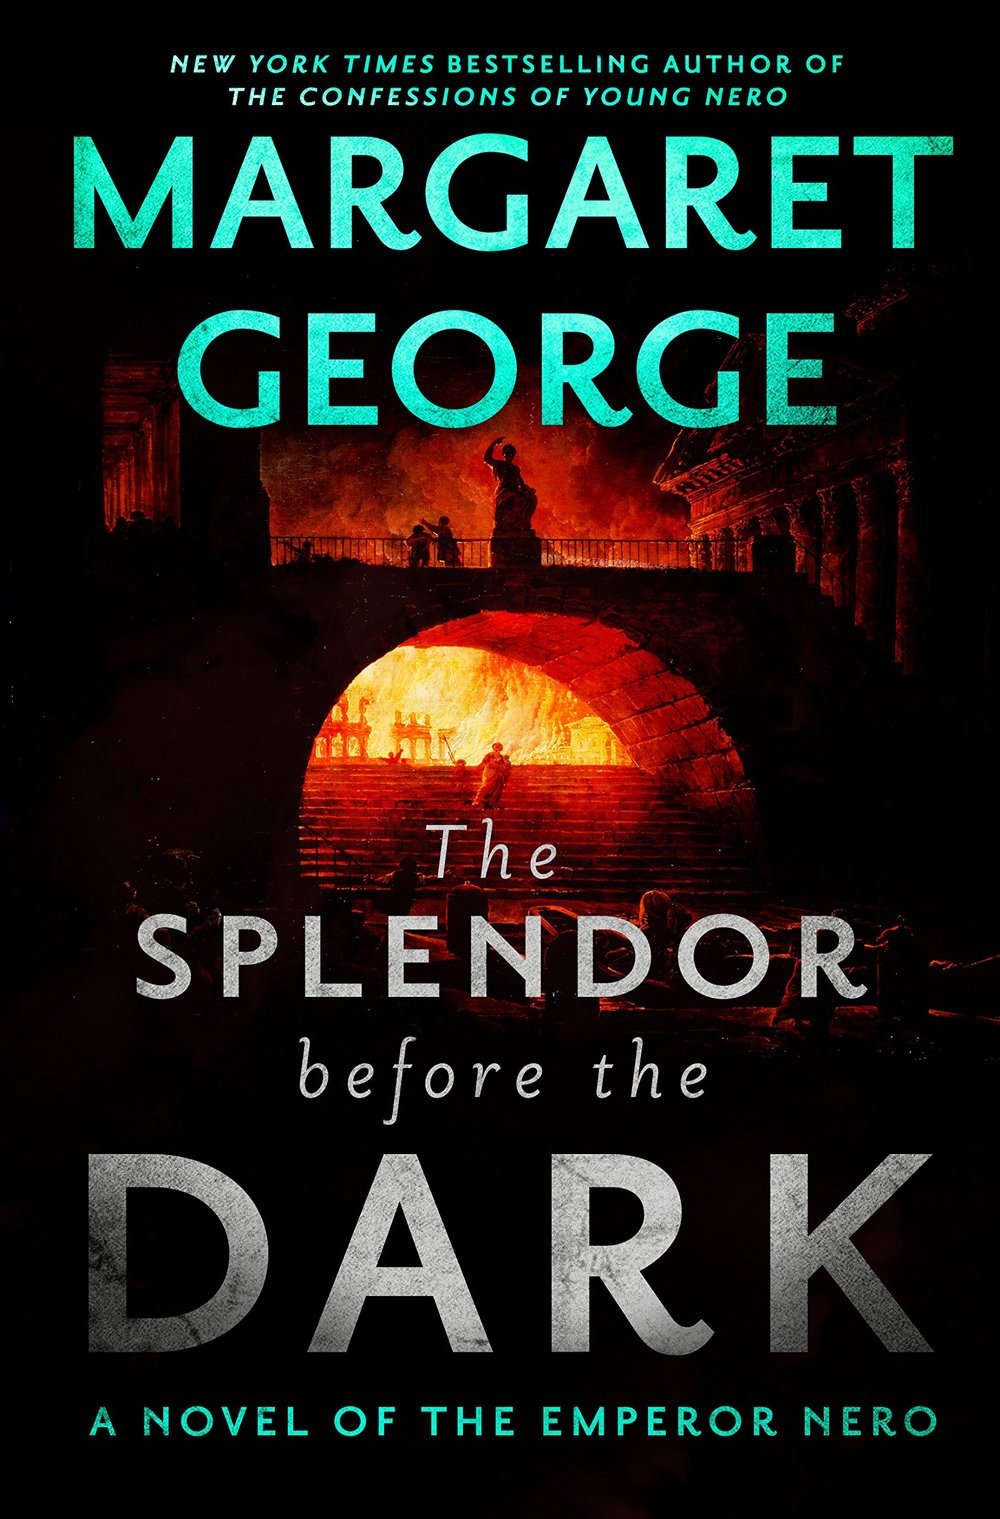 THE SPLENDOR BEFORE DARK by Margaret George